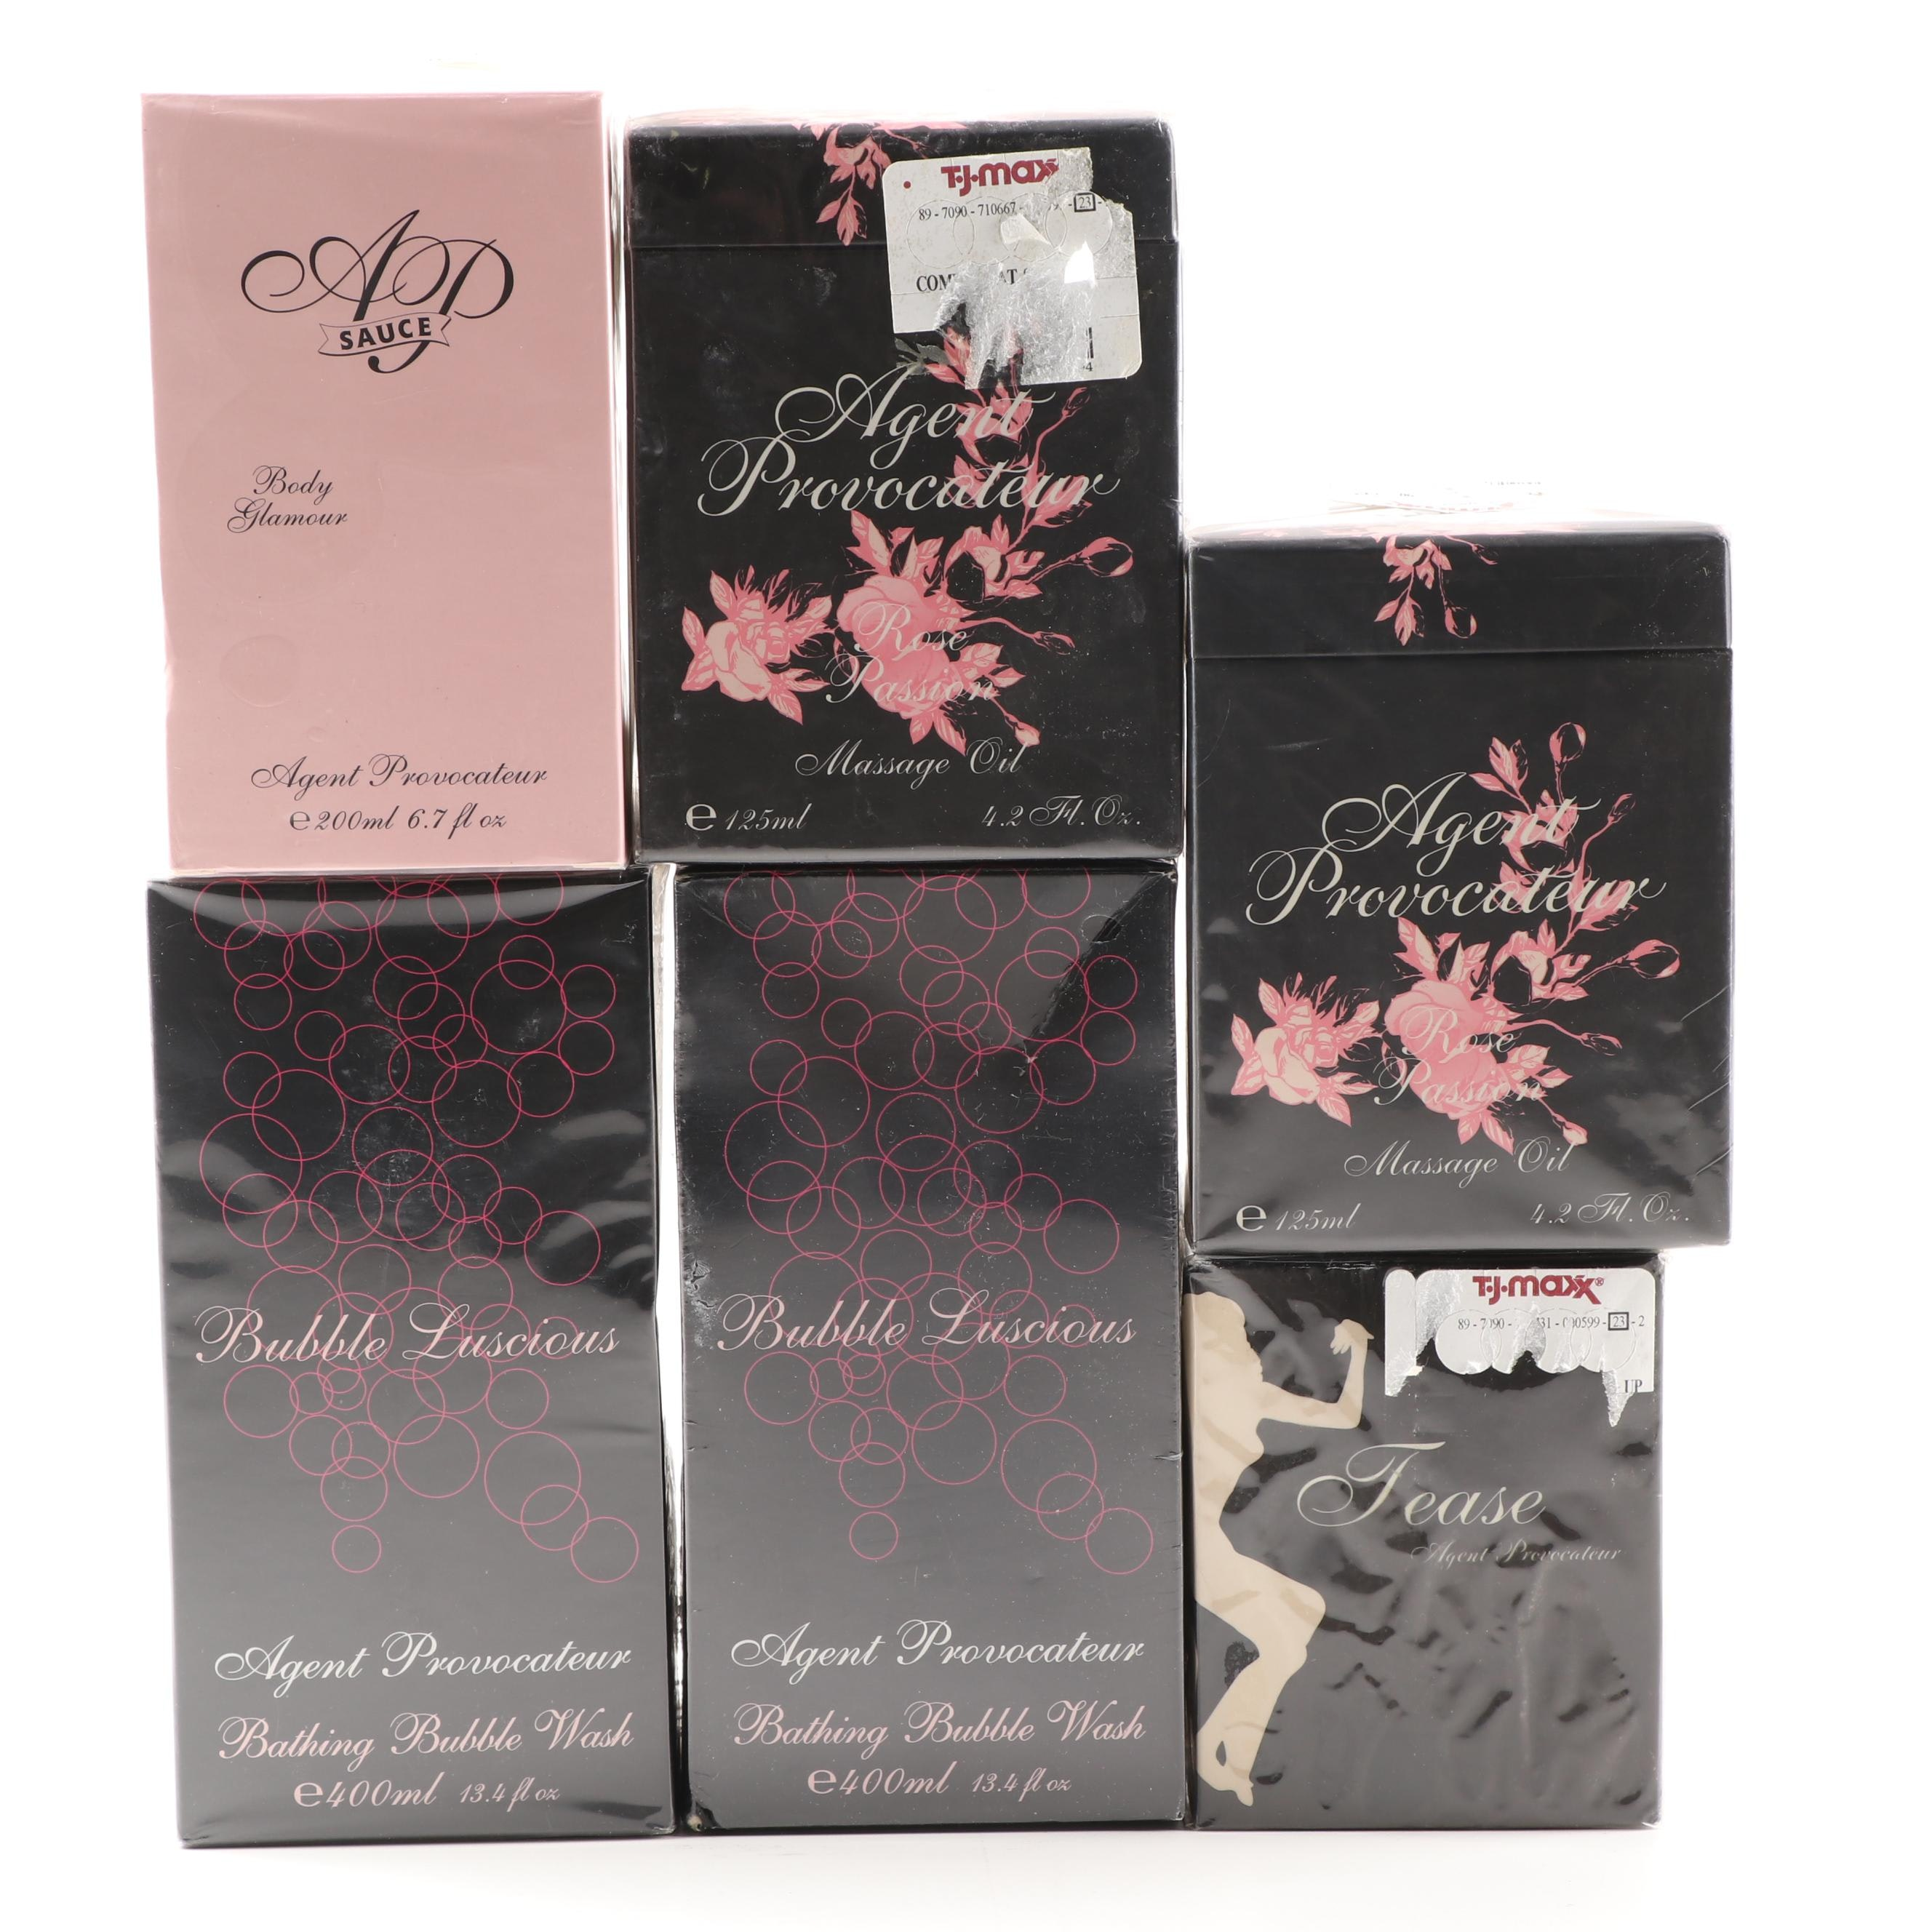 Agent Provocateur Toiletries and Candle